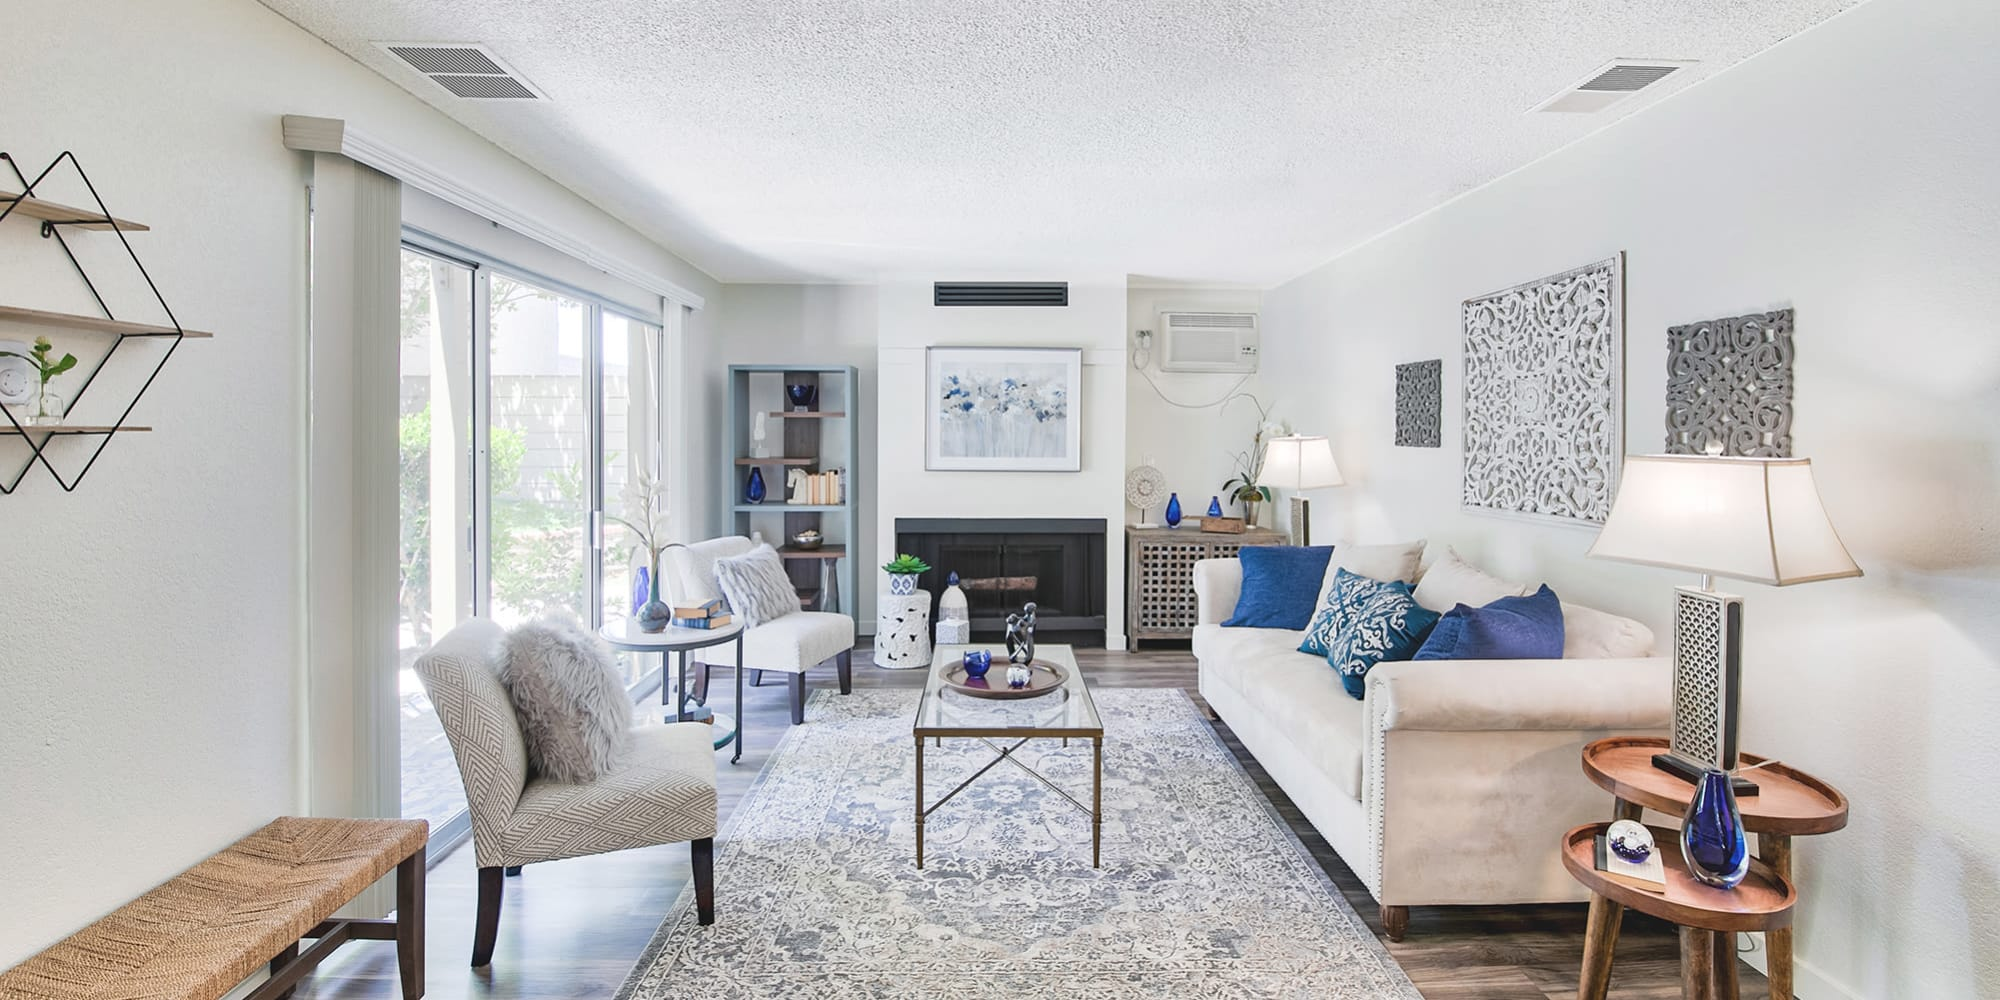 Natural light filling the living space of an open-concept model home at Mediterranean Village Apartments in Costa Mesa, California